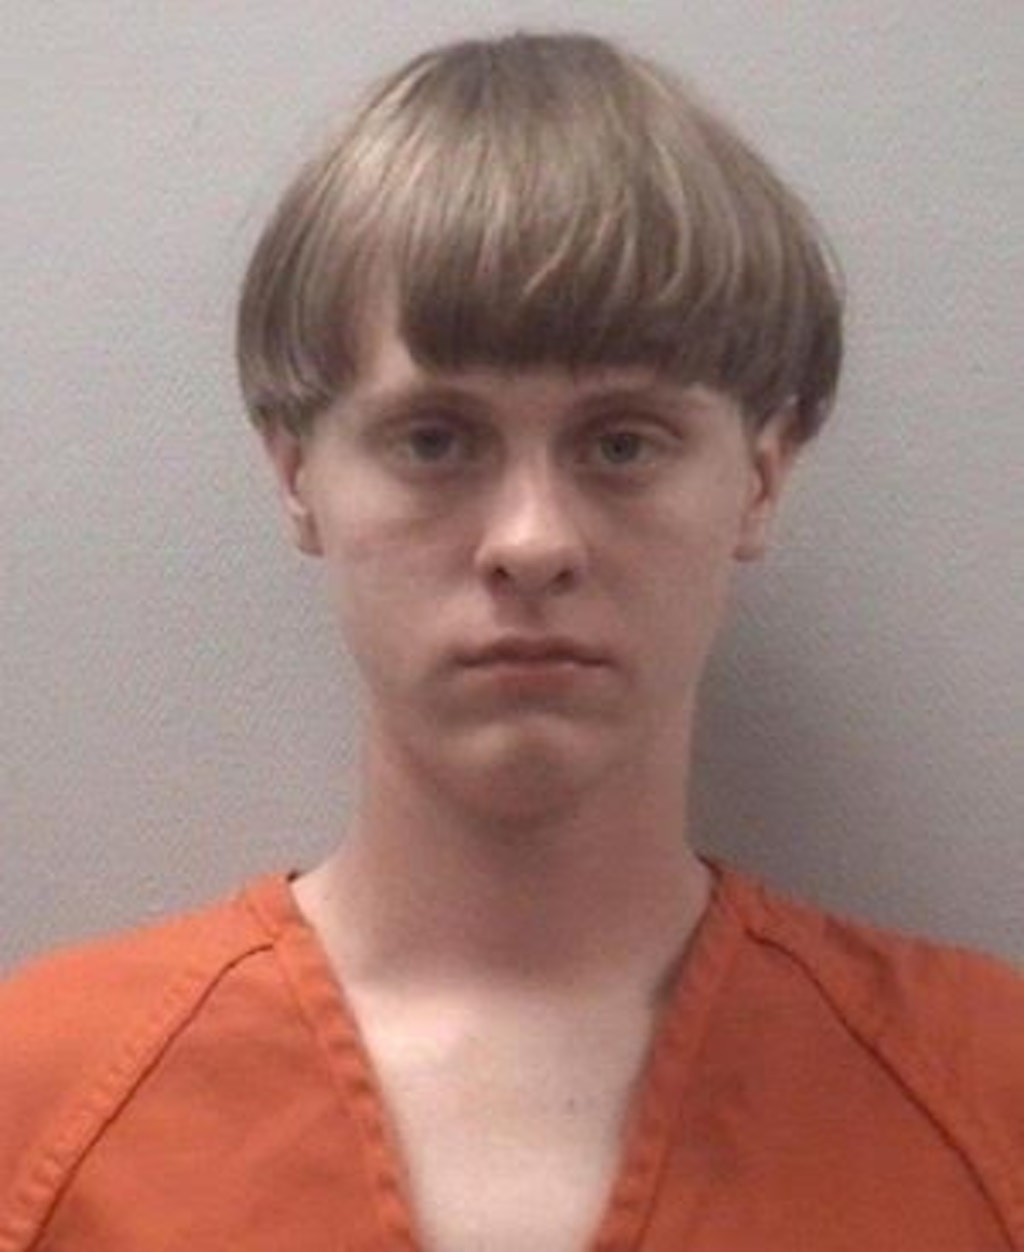 Newly Released Documents Show Dylann Roof Feared Being Labeled Mentally Ill More Than He Feared Death Sentence